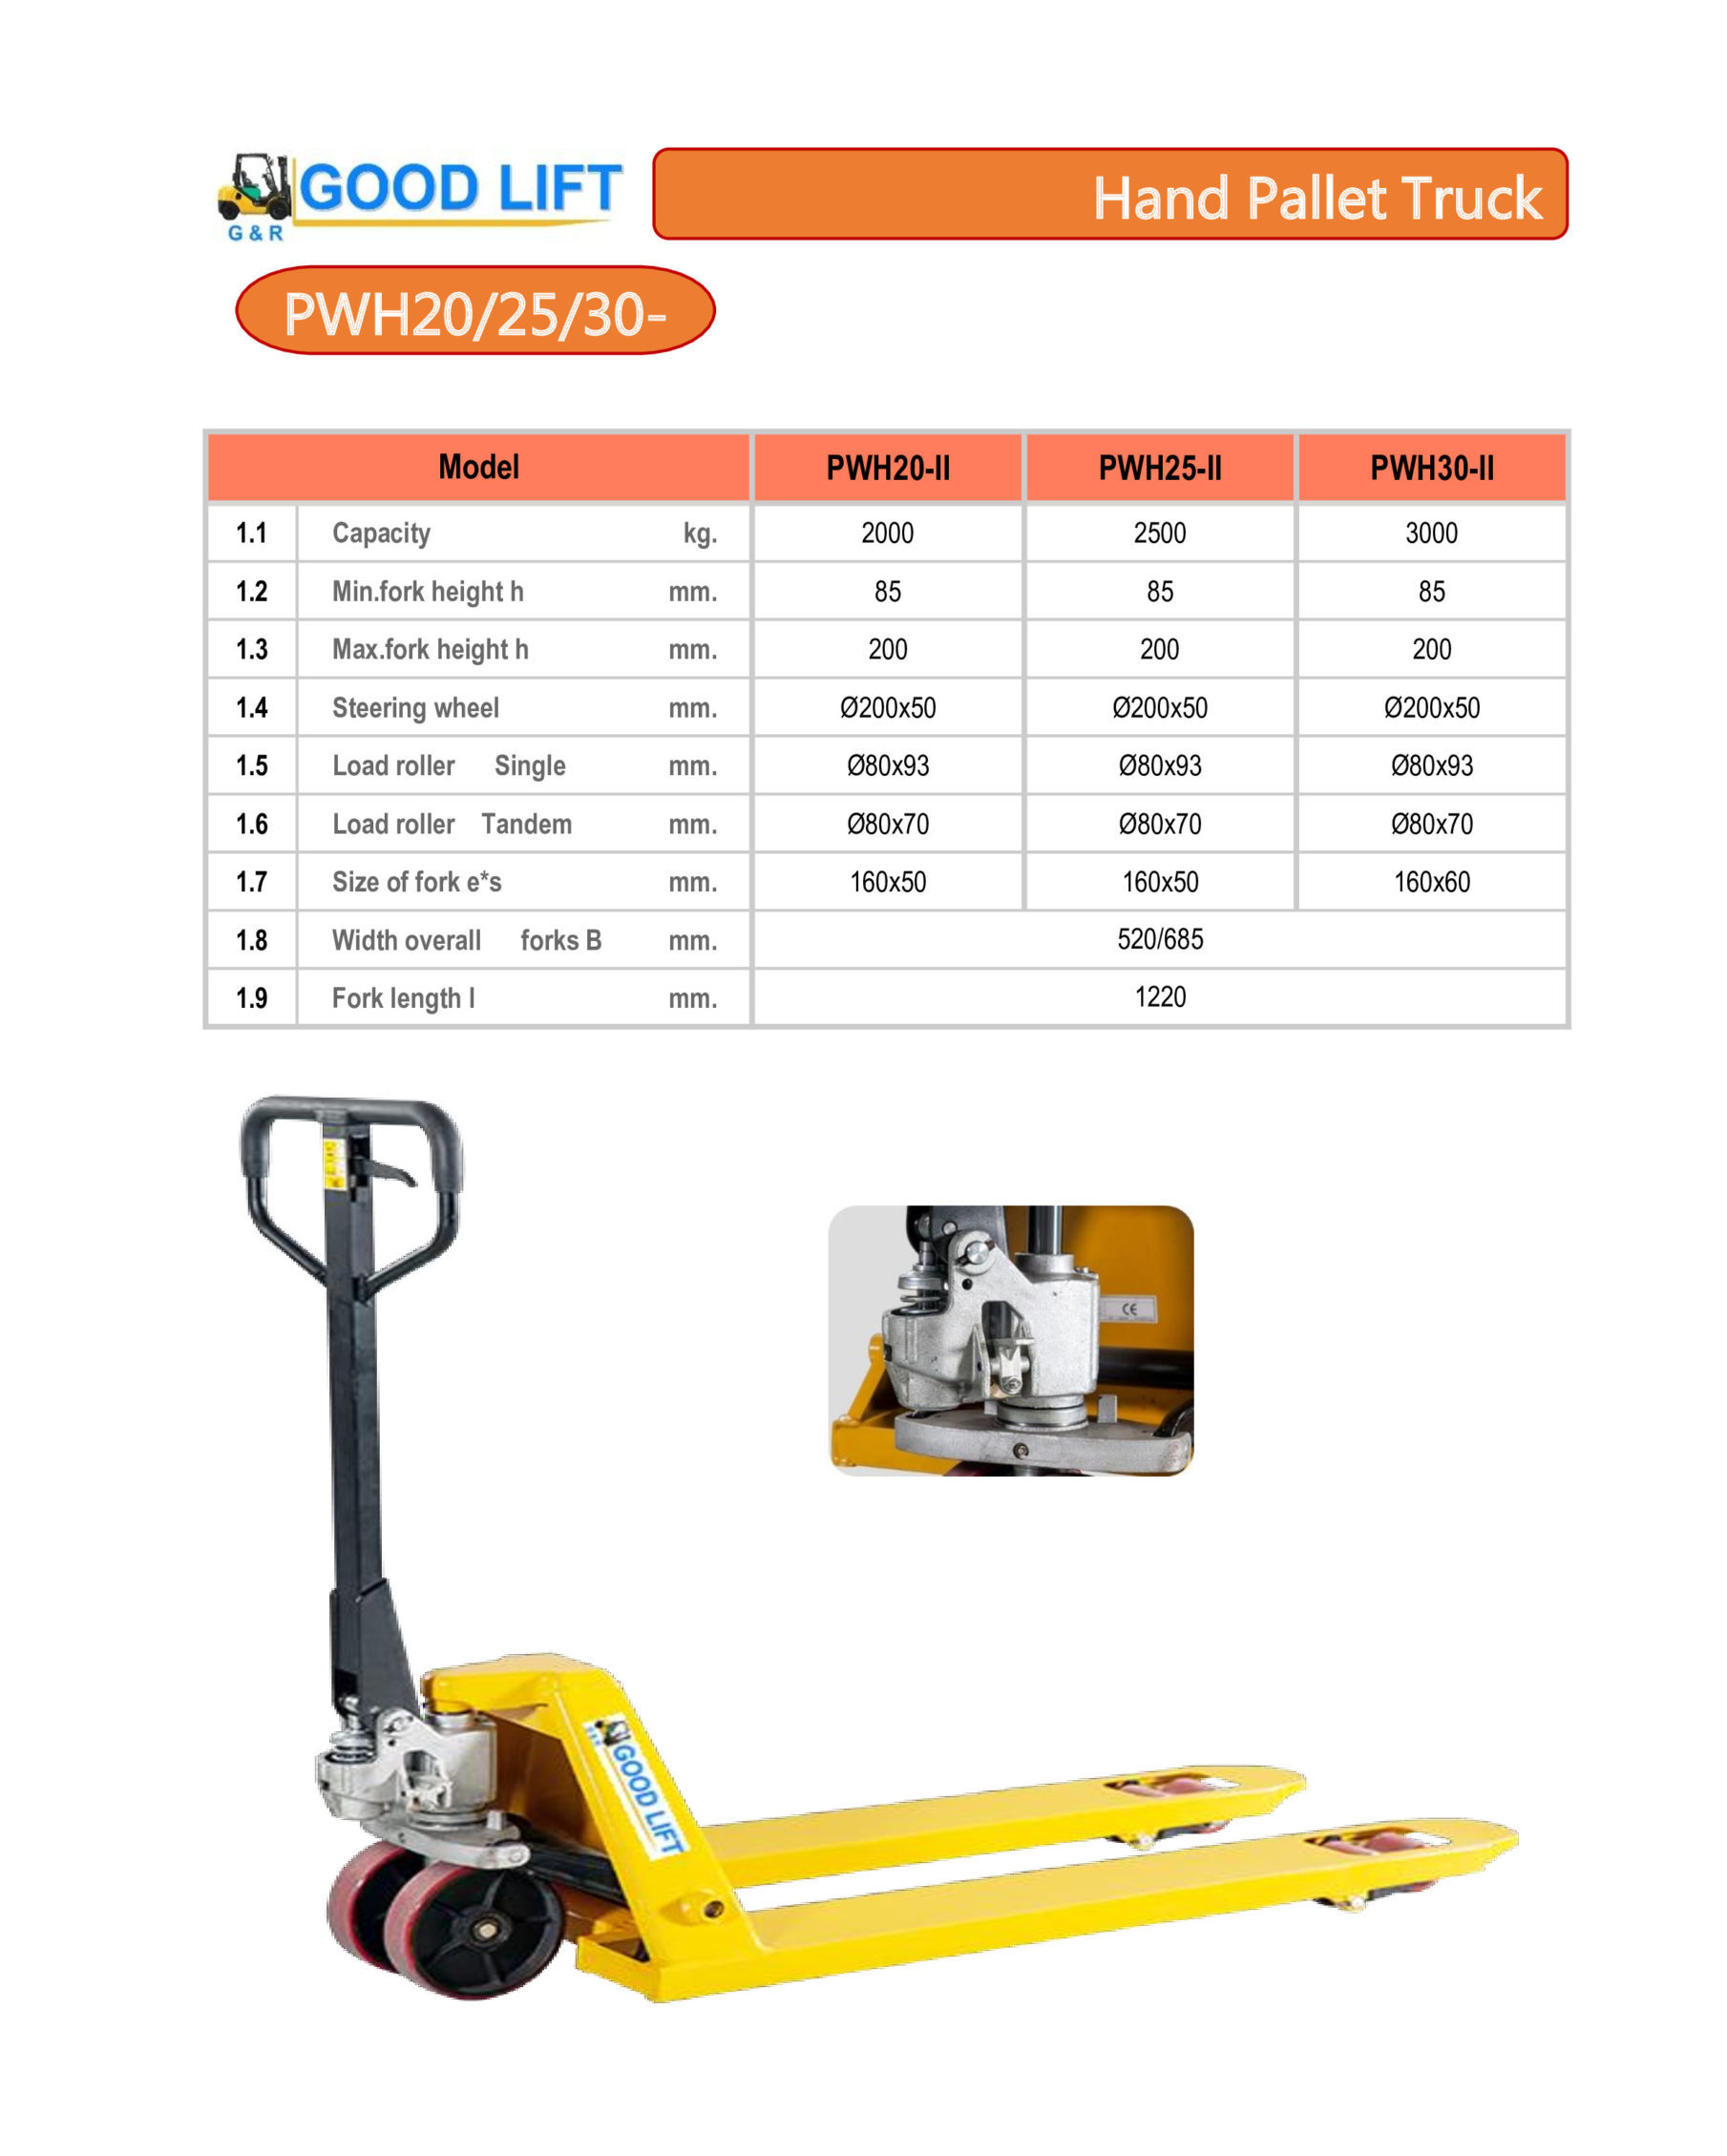 HAND-PALLET-TRUCK-pwh20/25/30